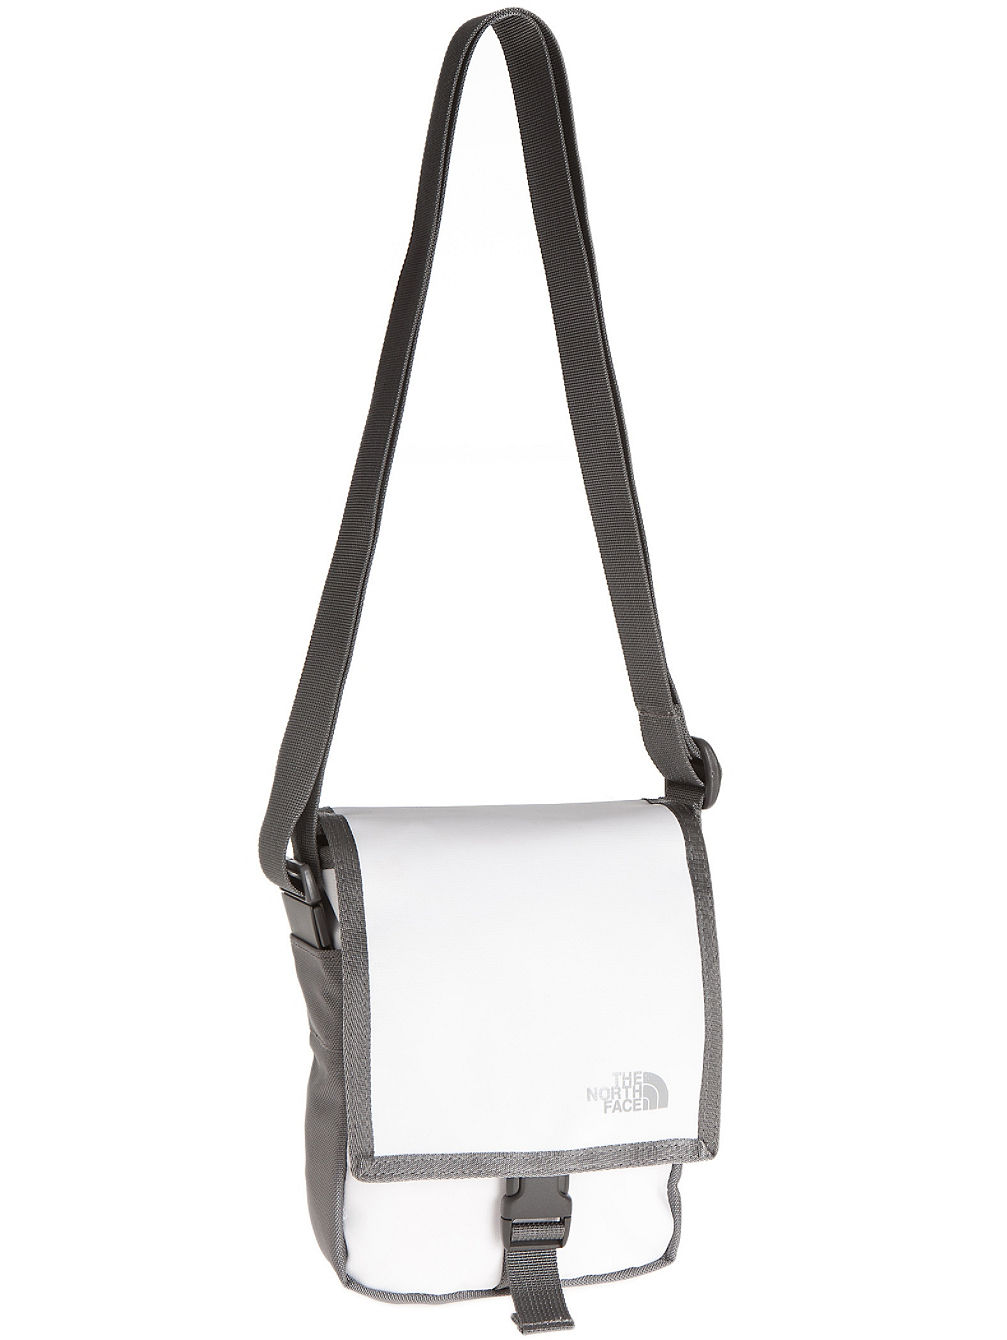 Buy THE NORTH FACE Bardu Bag online at blue-tomato.com 955368b236f5f